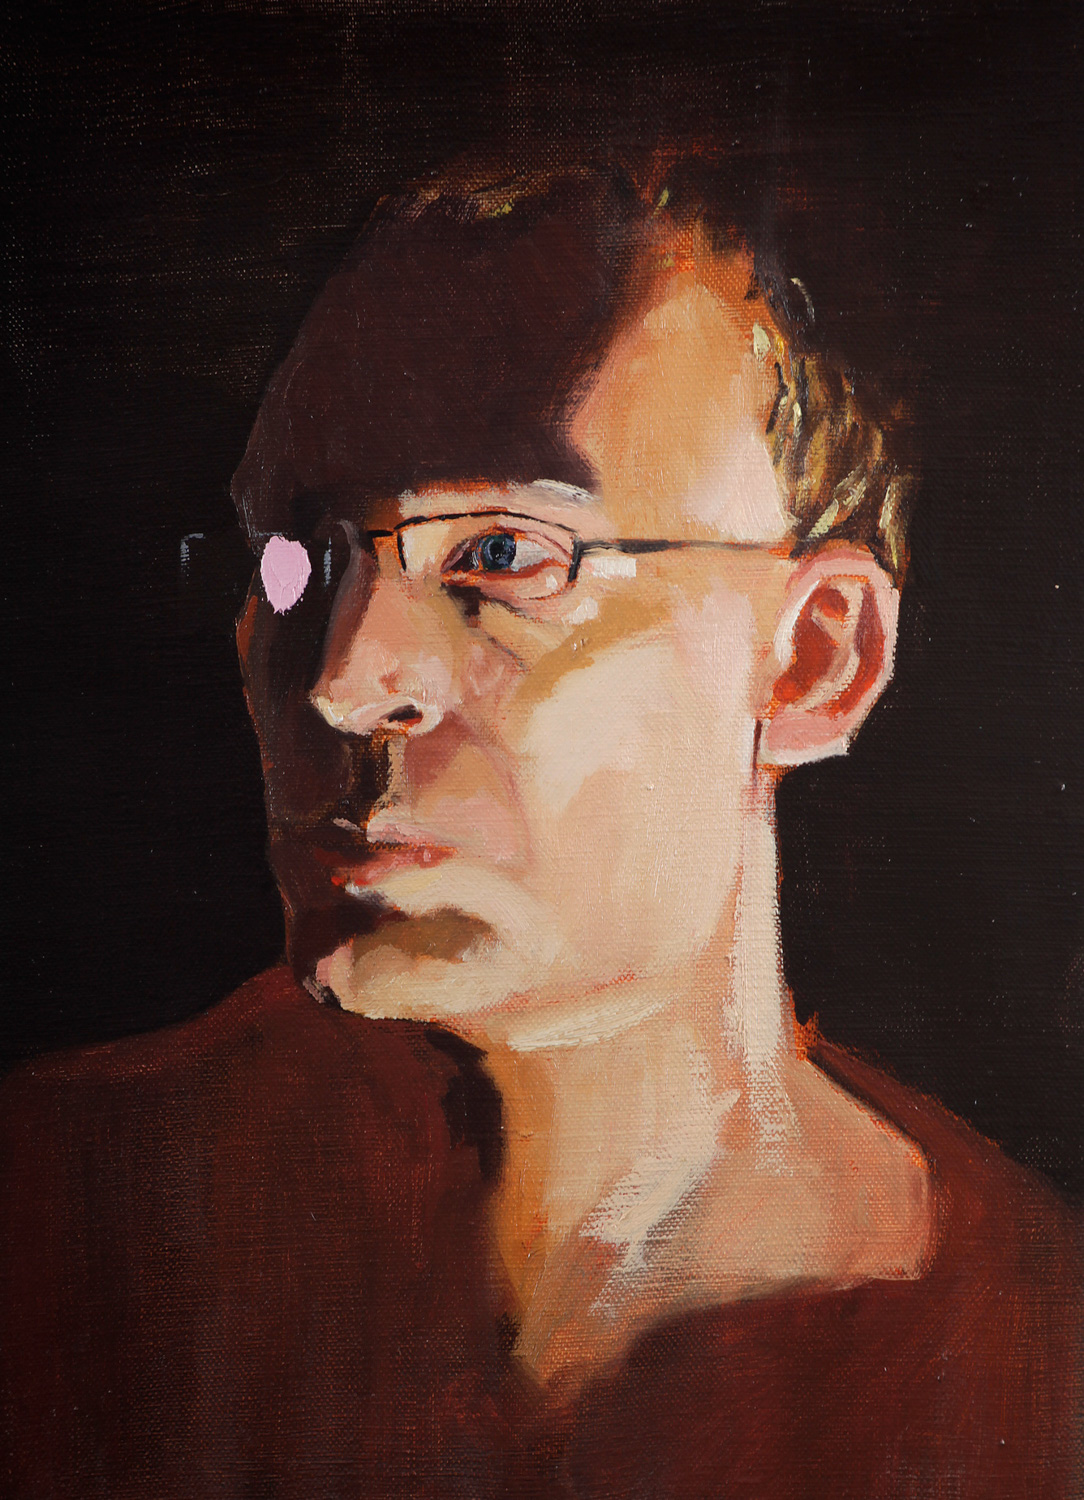 Self portrait, Oil on canvas, 30X40 cm, 2013